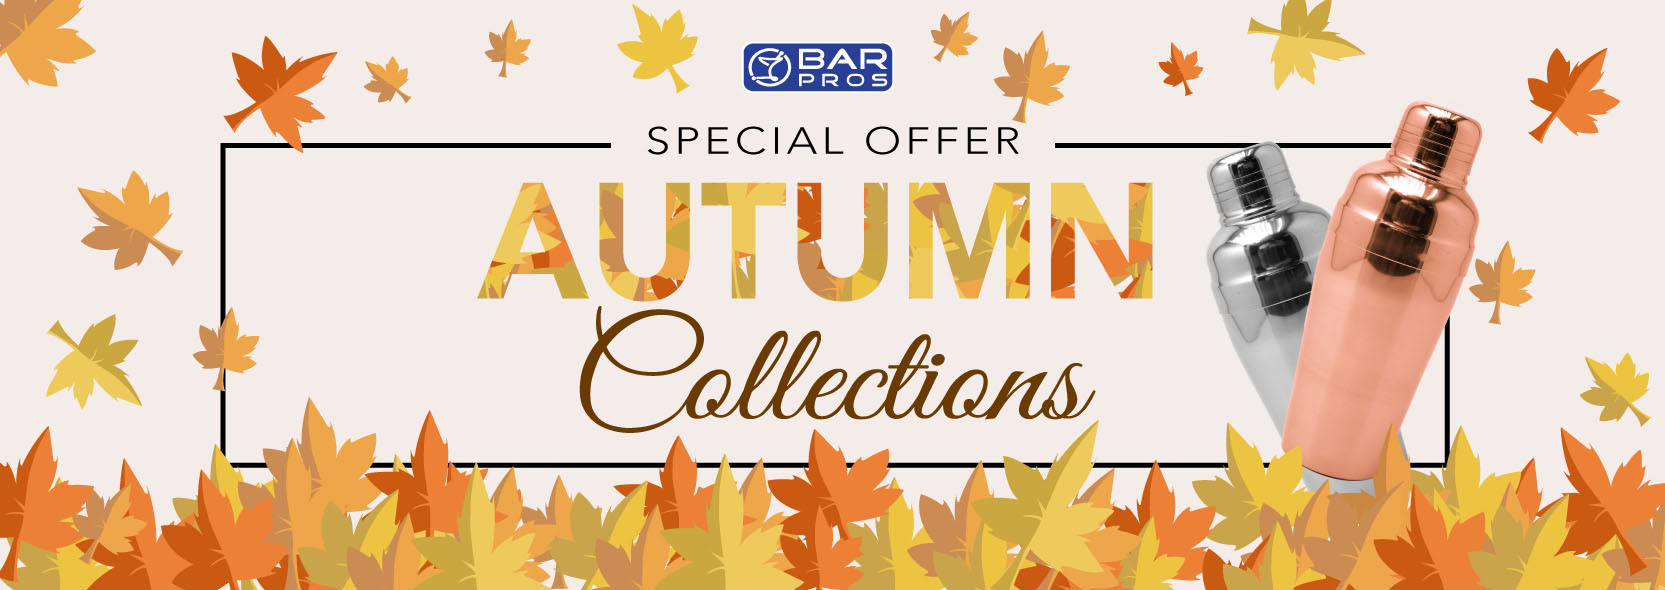 Special Offer Autumn Collections - Barpros